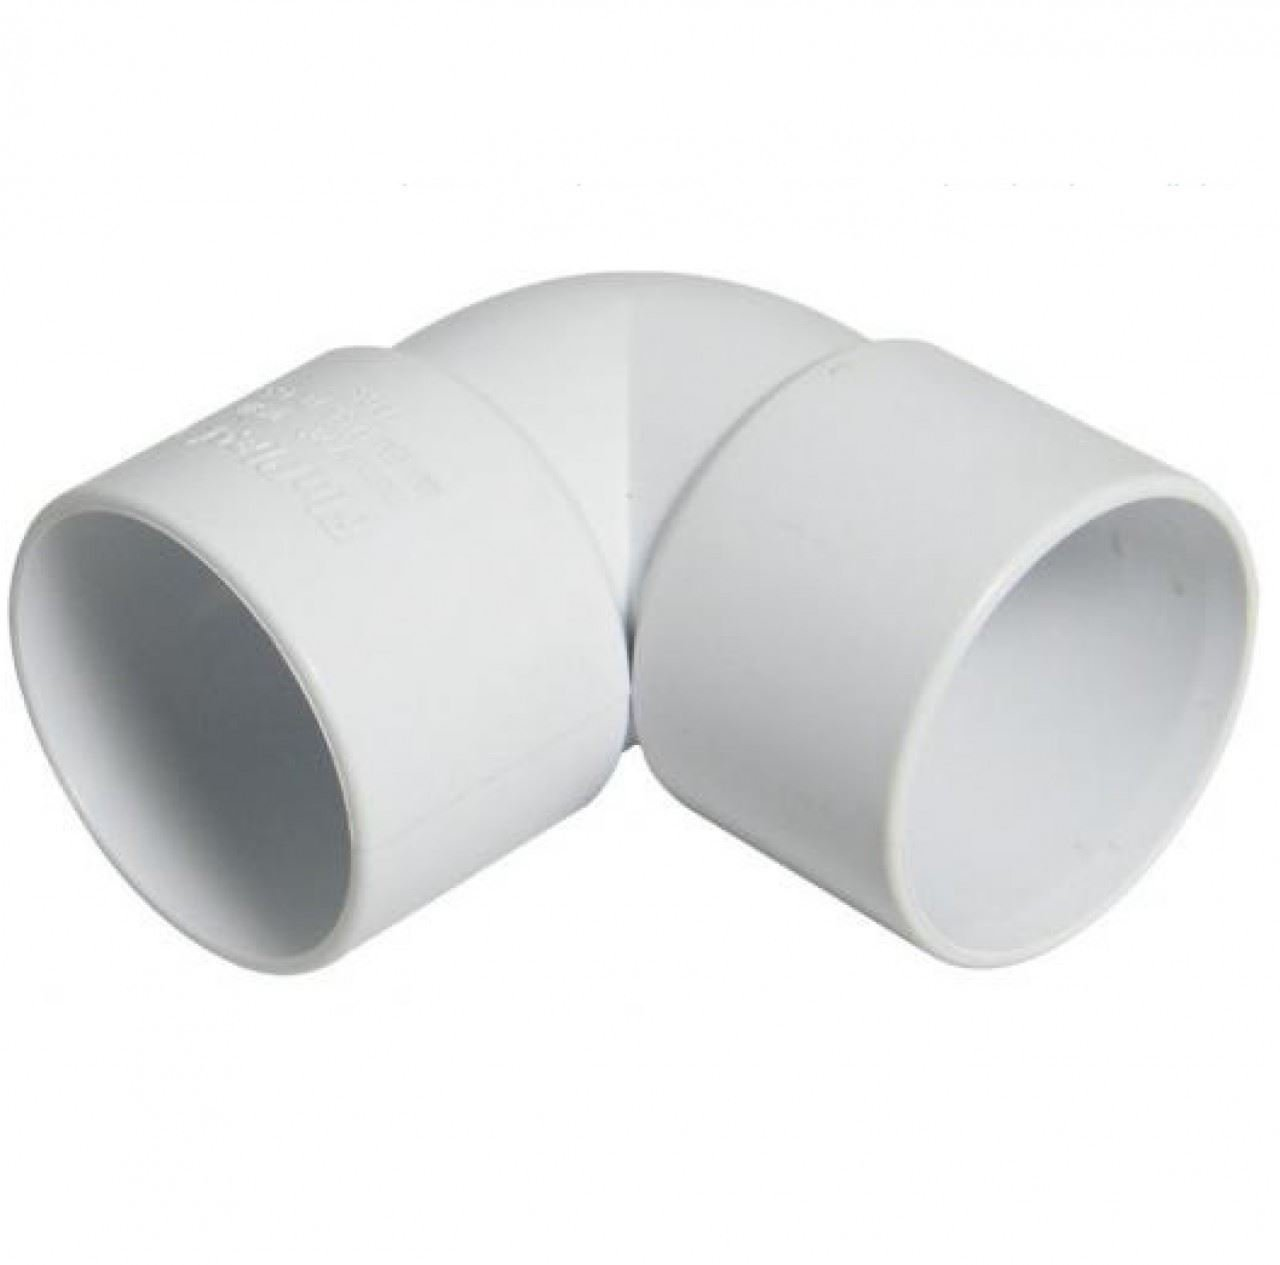 10 x Waste Pipe Fittings Elbows for 32mm 36mm for Solvent Weld Waste Pipe White